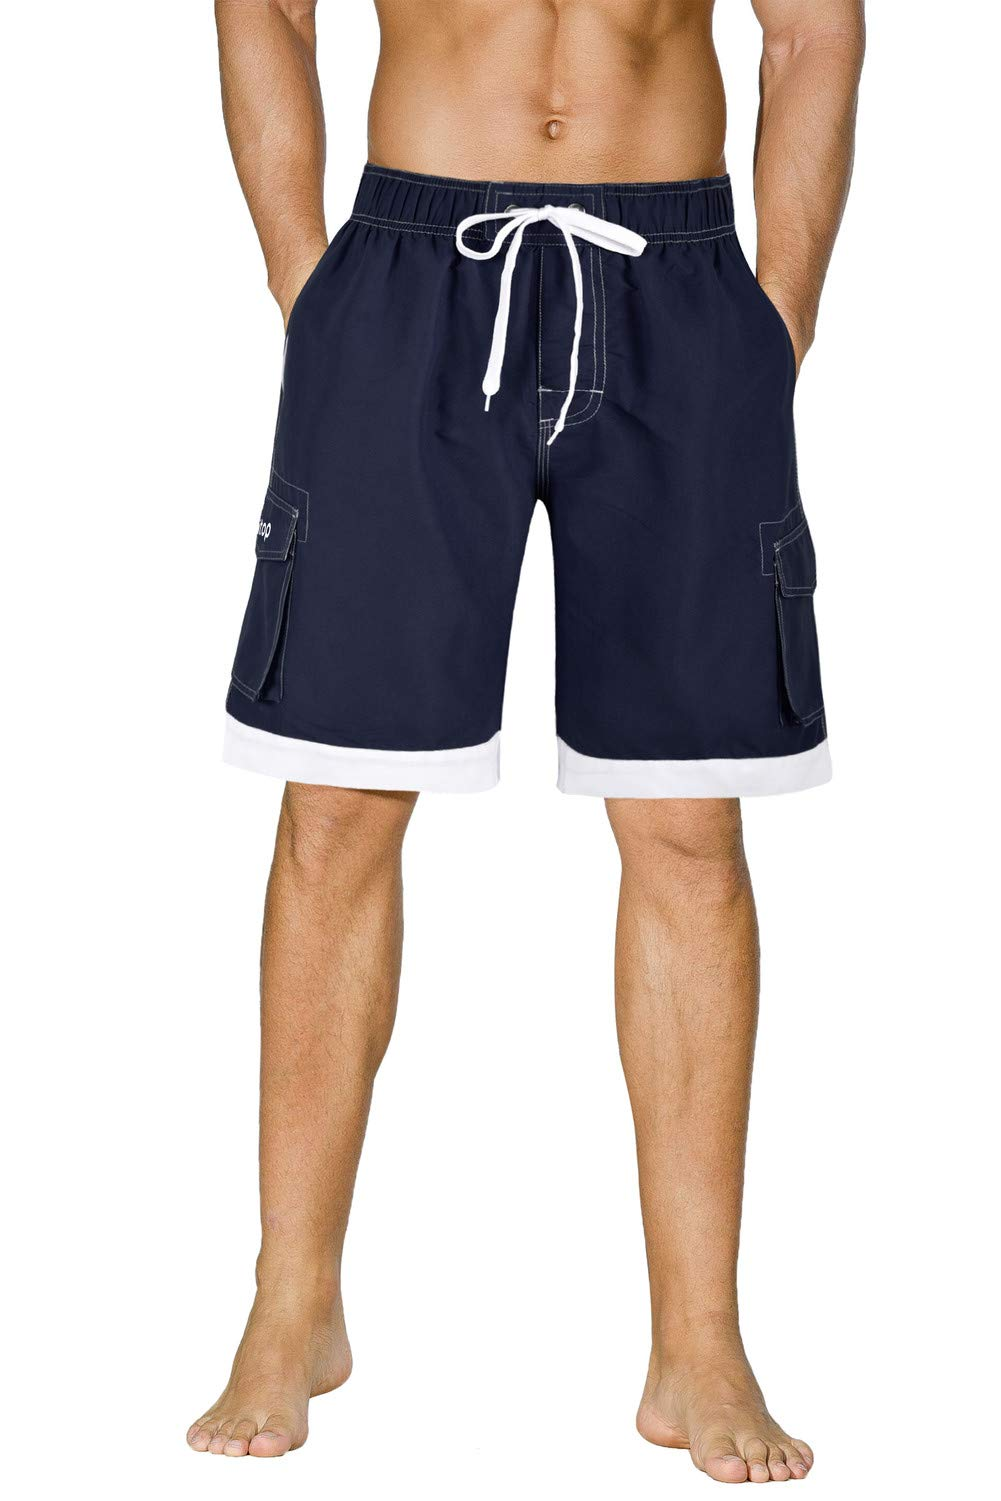 Unitop Men's Summer Holidays Casual Quick Dry Bathing Boardshorts Blue 32